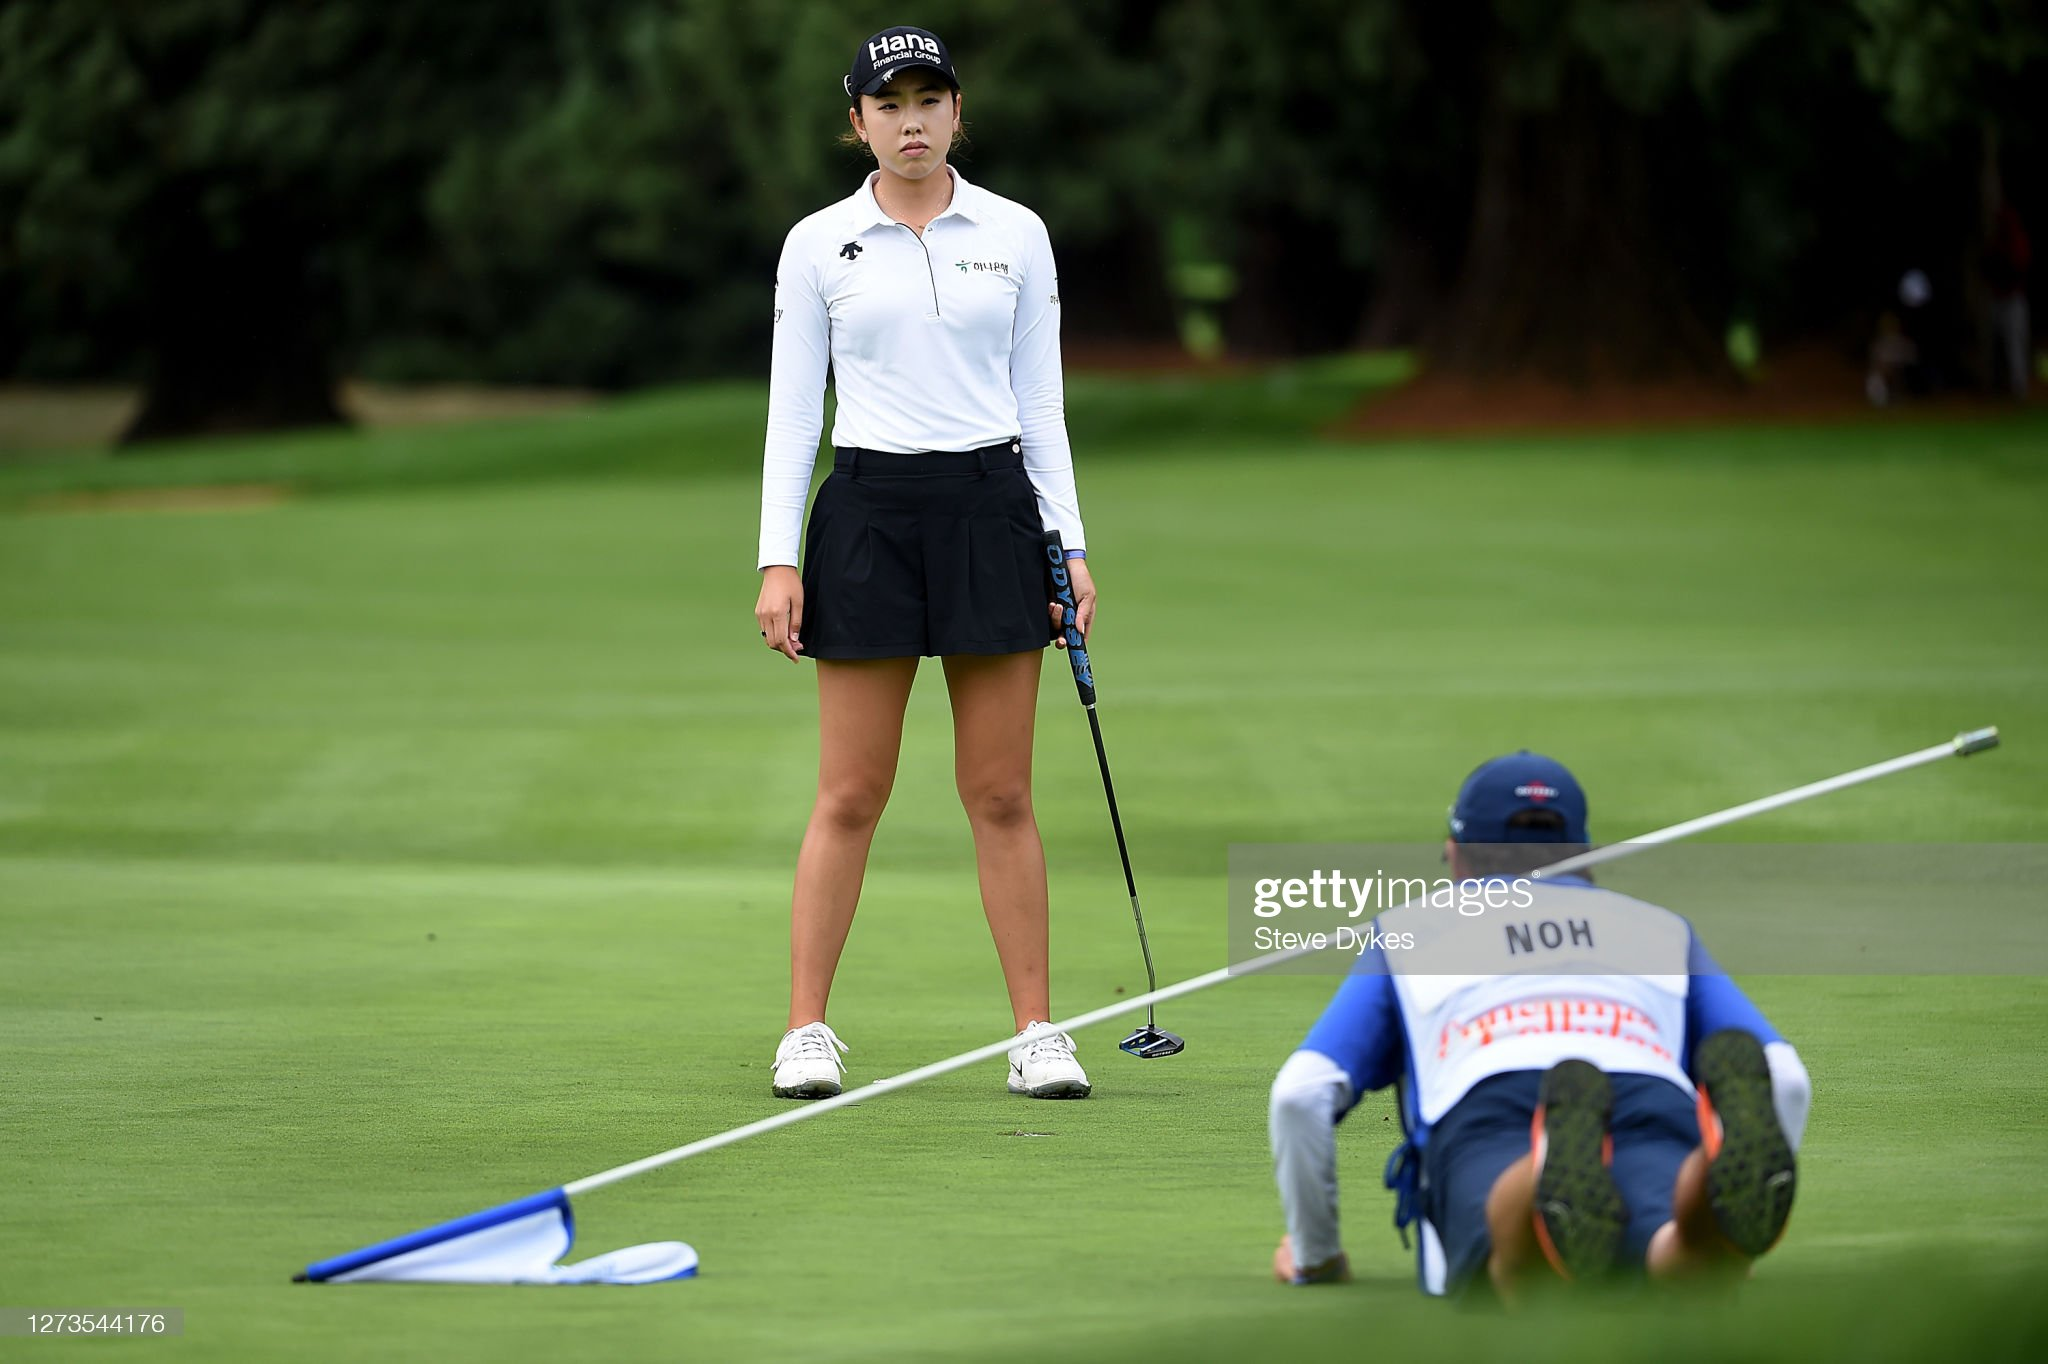 https://media.gettyimages.com/photos/yealimi-noh-lines-up-her-putt-with-her-caddie-on-the-15th-hole-during-picture-id1273544176?s=2048x2048